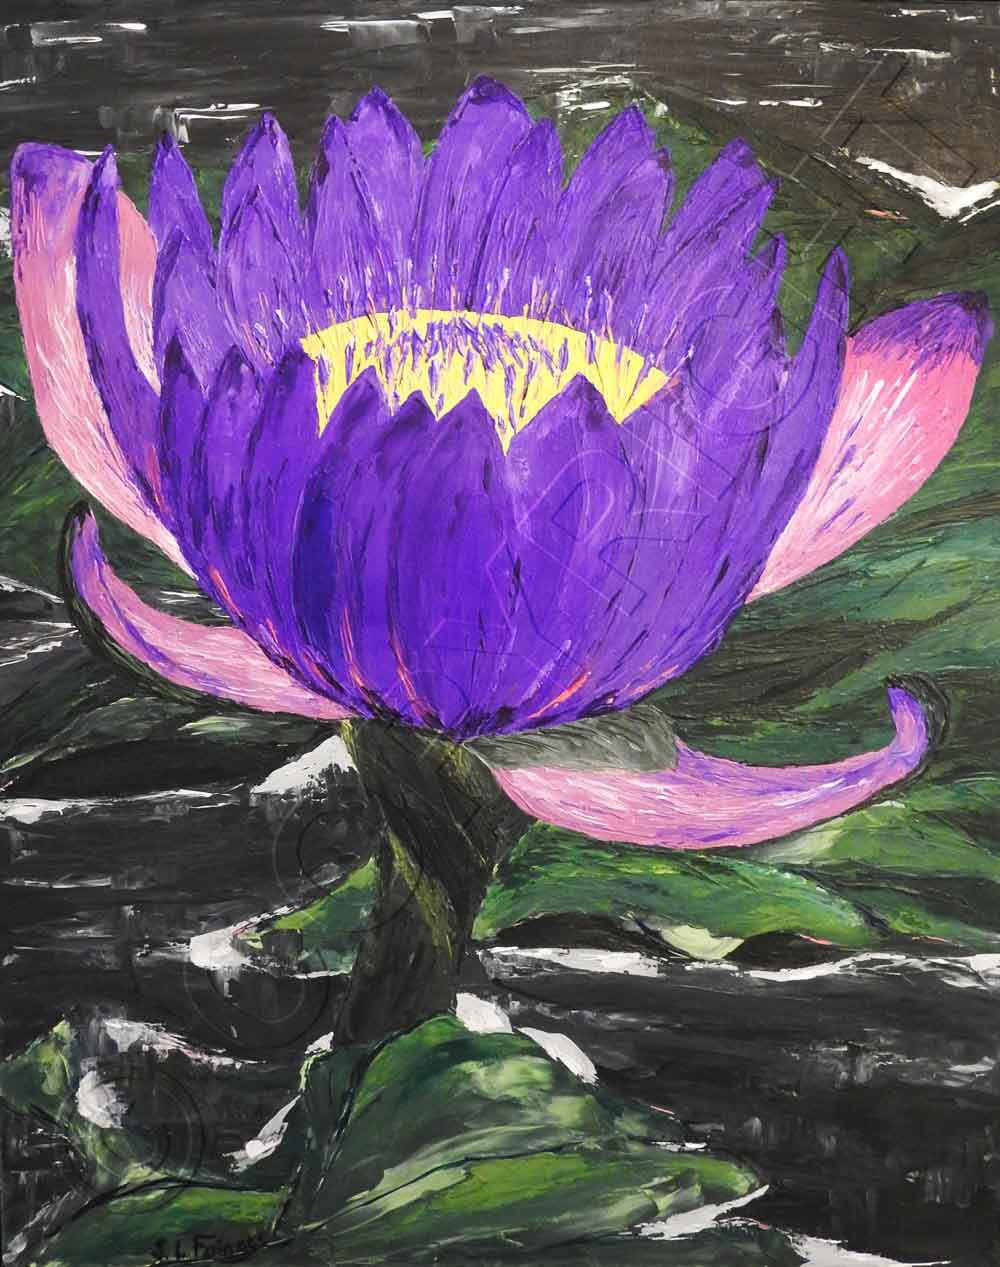 Painting of Water Lily